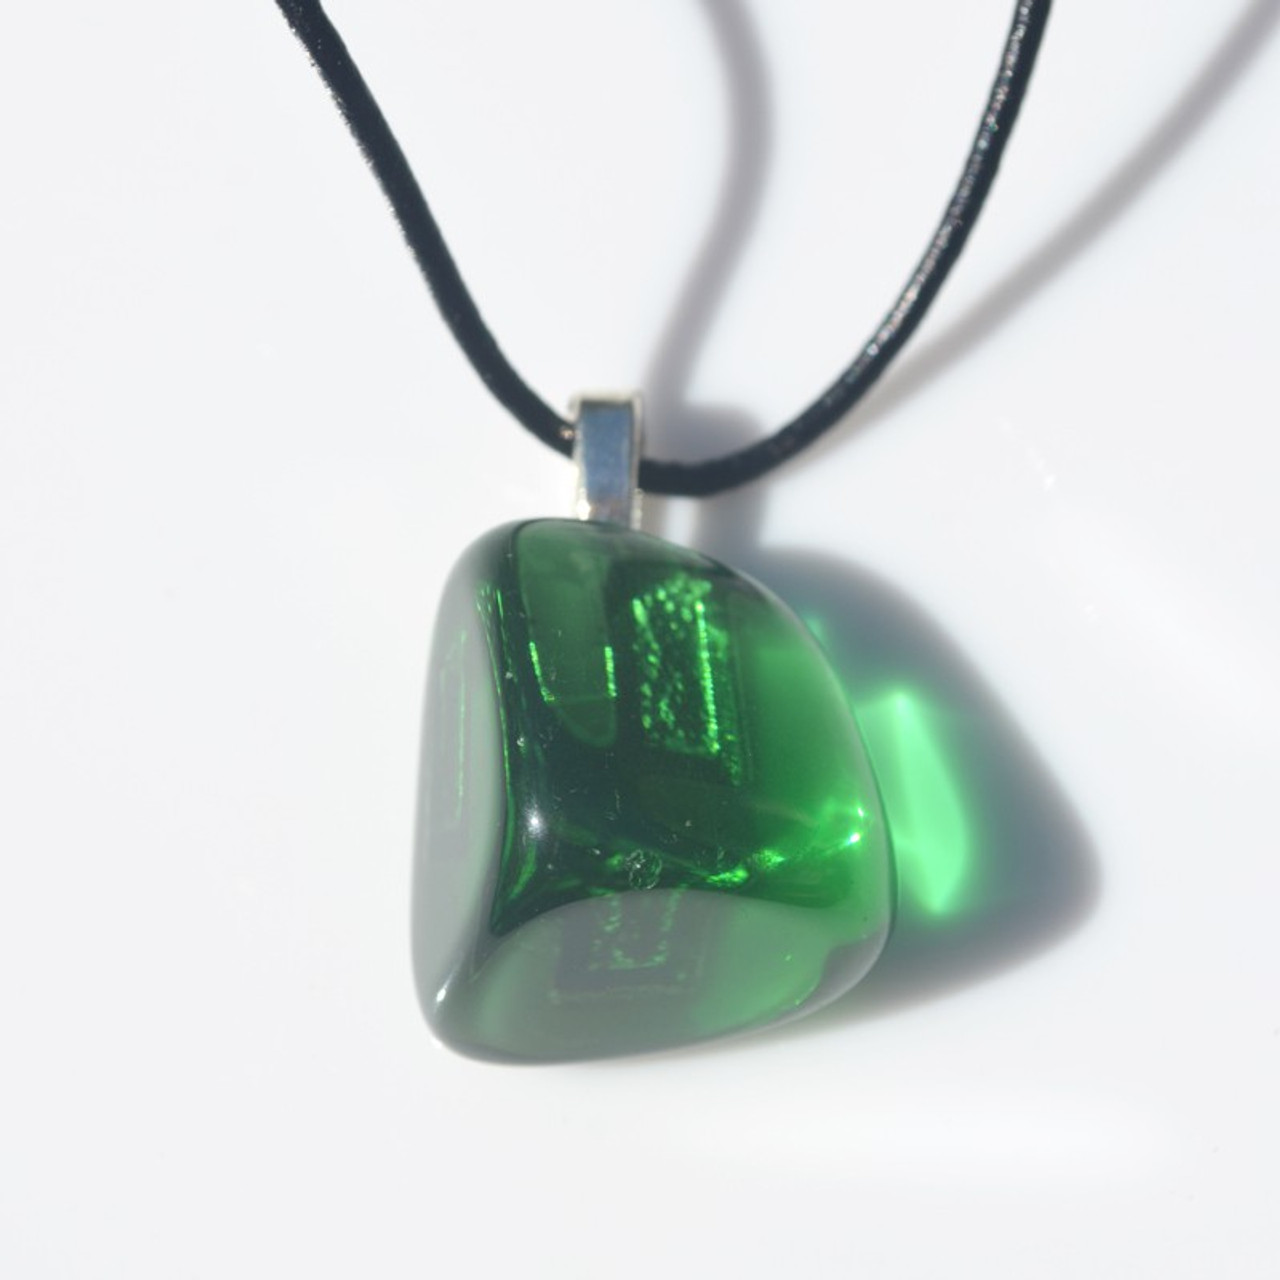 Custom Tumbled Green Obsidian Pendant and Necklace - Choose Sterling Silver Chain or Leather Cord - Quantity of 1